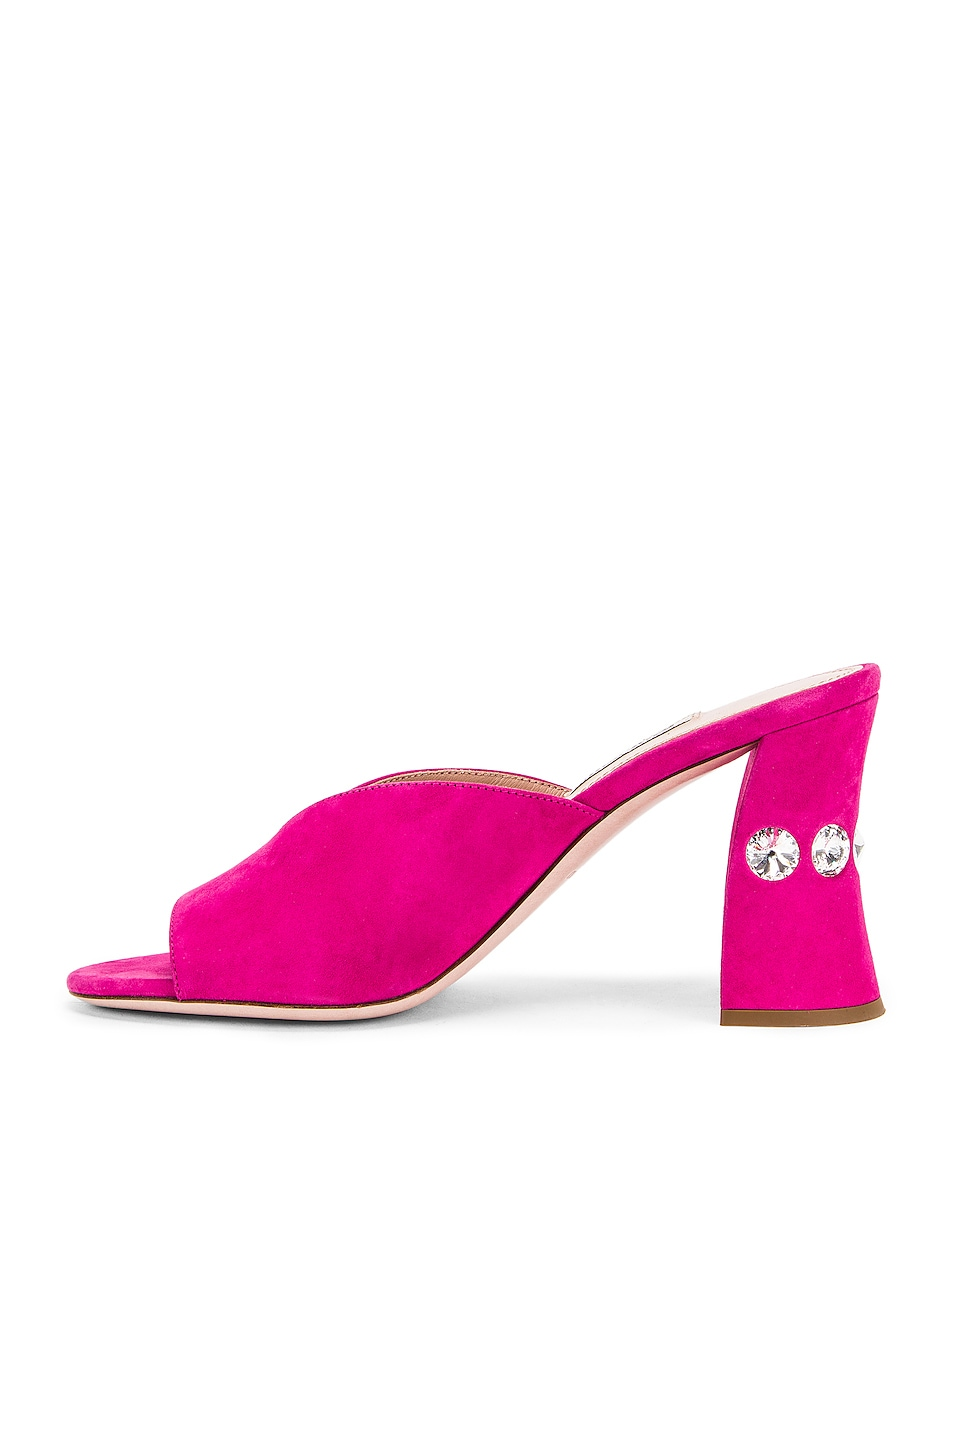 Image 5 of Miu Miu Jeweled Mules in Pink